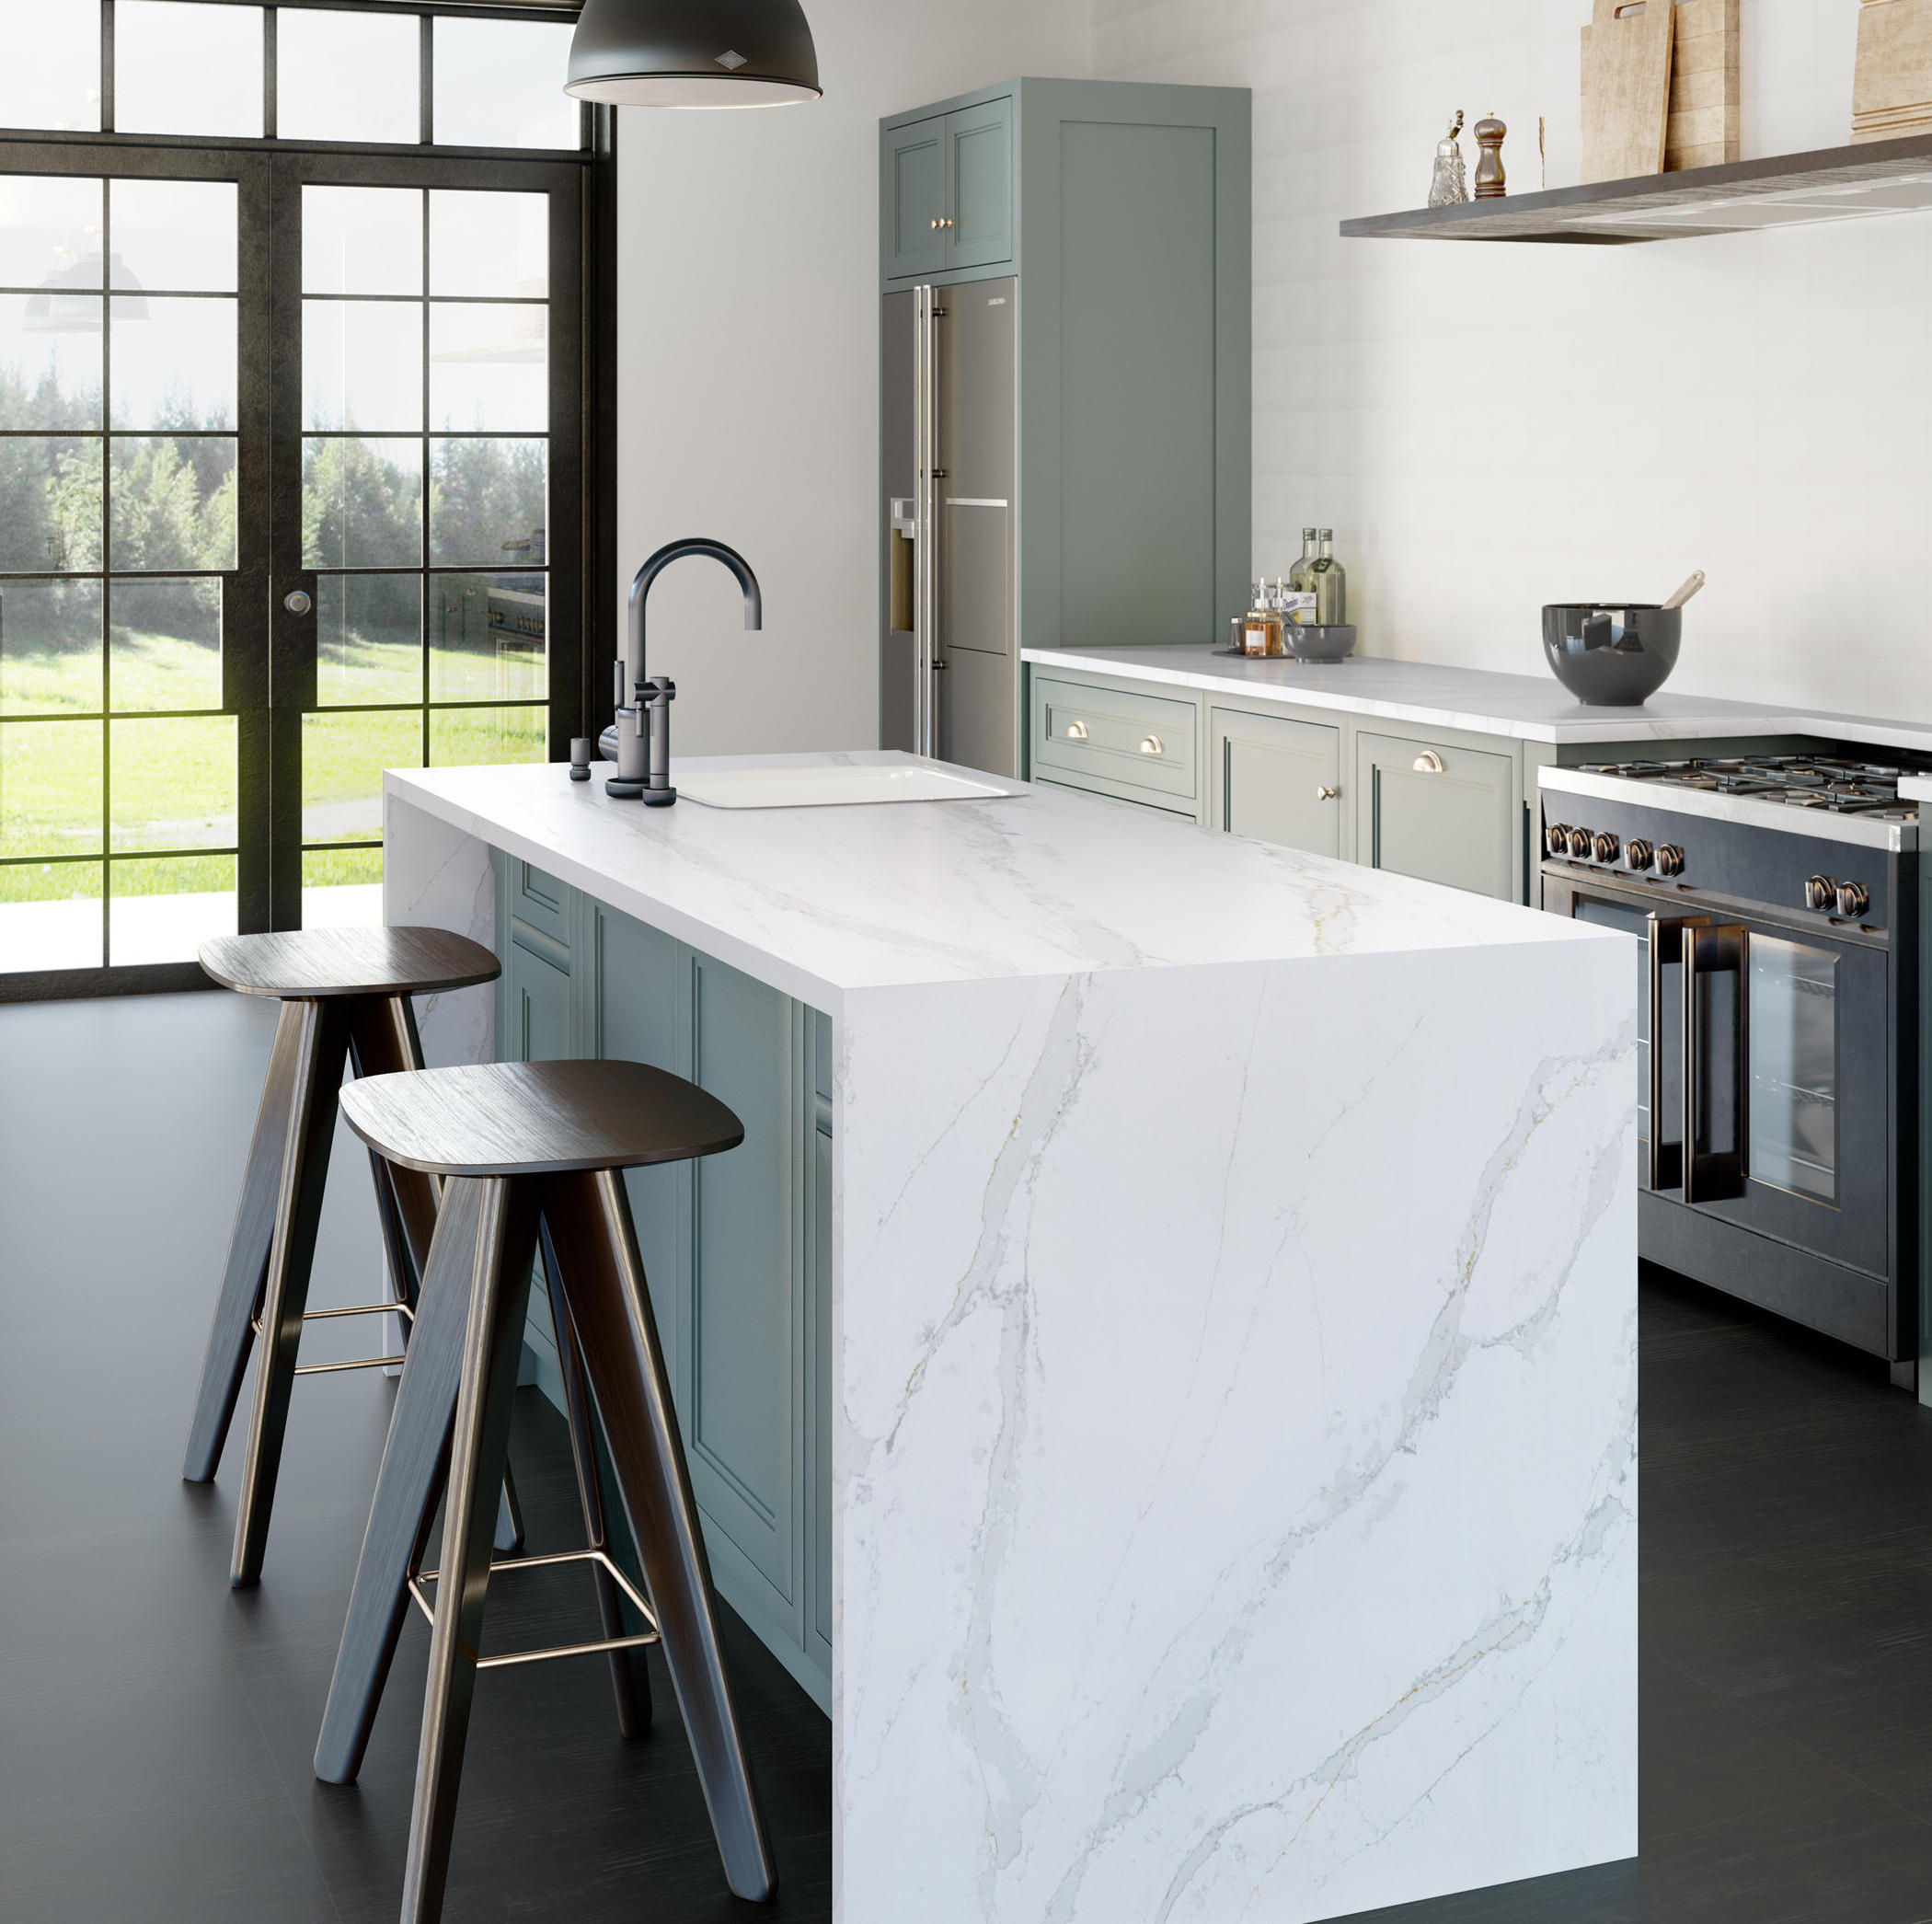 Silestone-eternal-kitchen-calacatta-gold-b